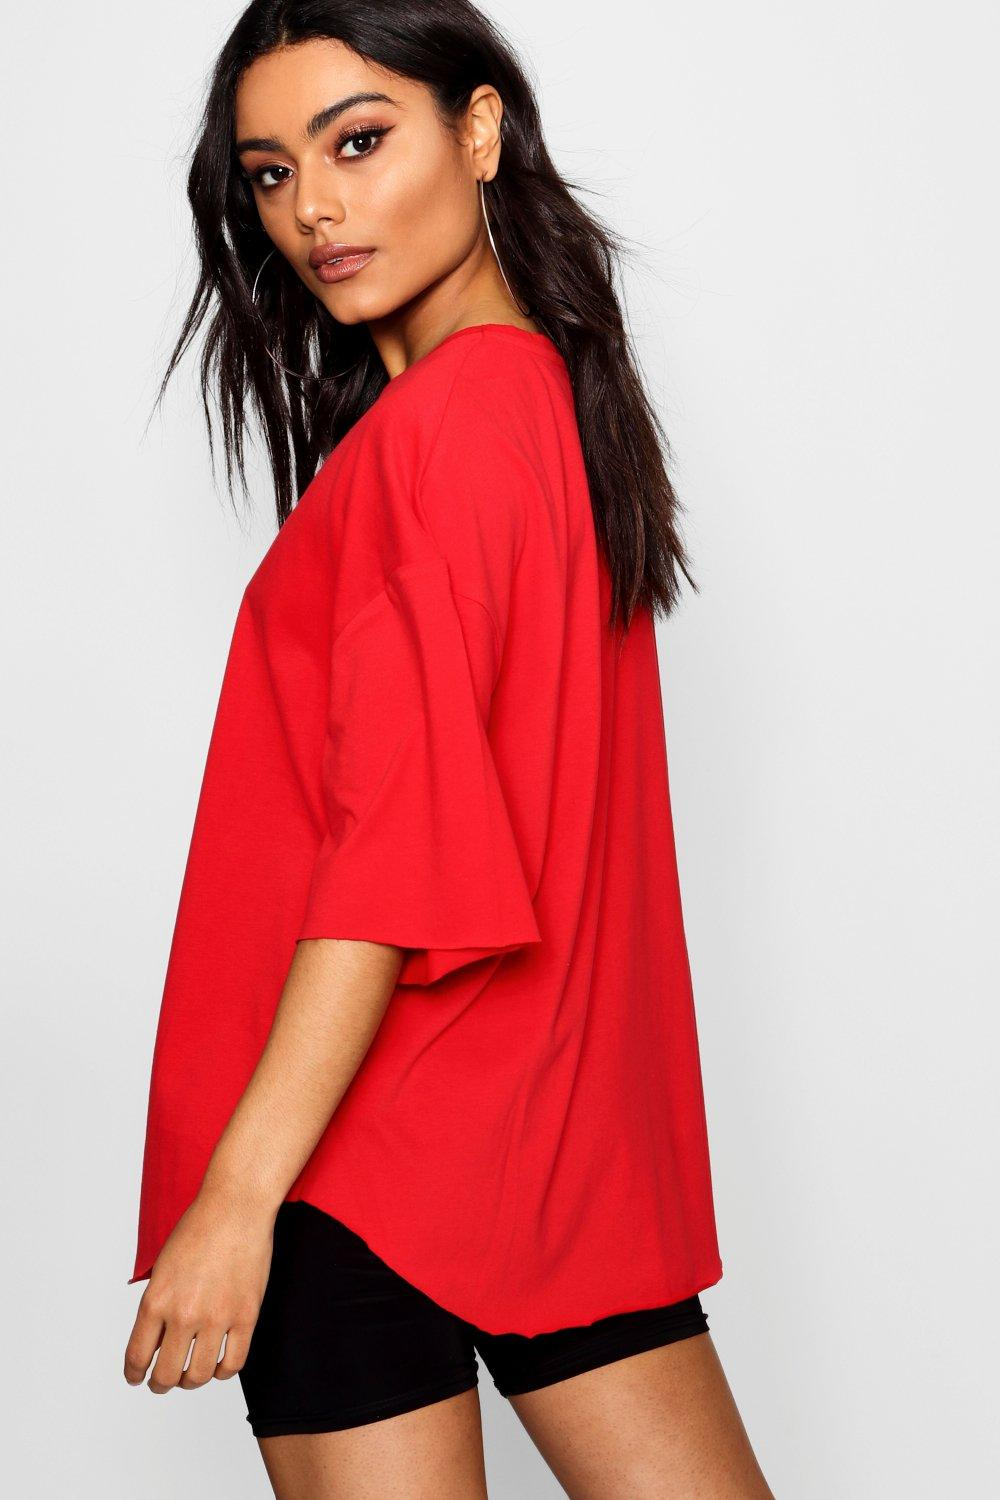 Supersoft Oversized red Oversized T Shirt T T red Supersoft Oversized Supersoft Supersoft red Shirt Oversized Shirt T nOIap5Cq